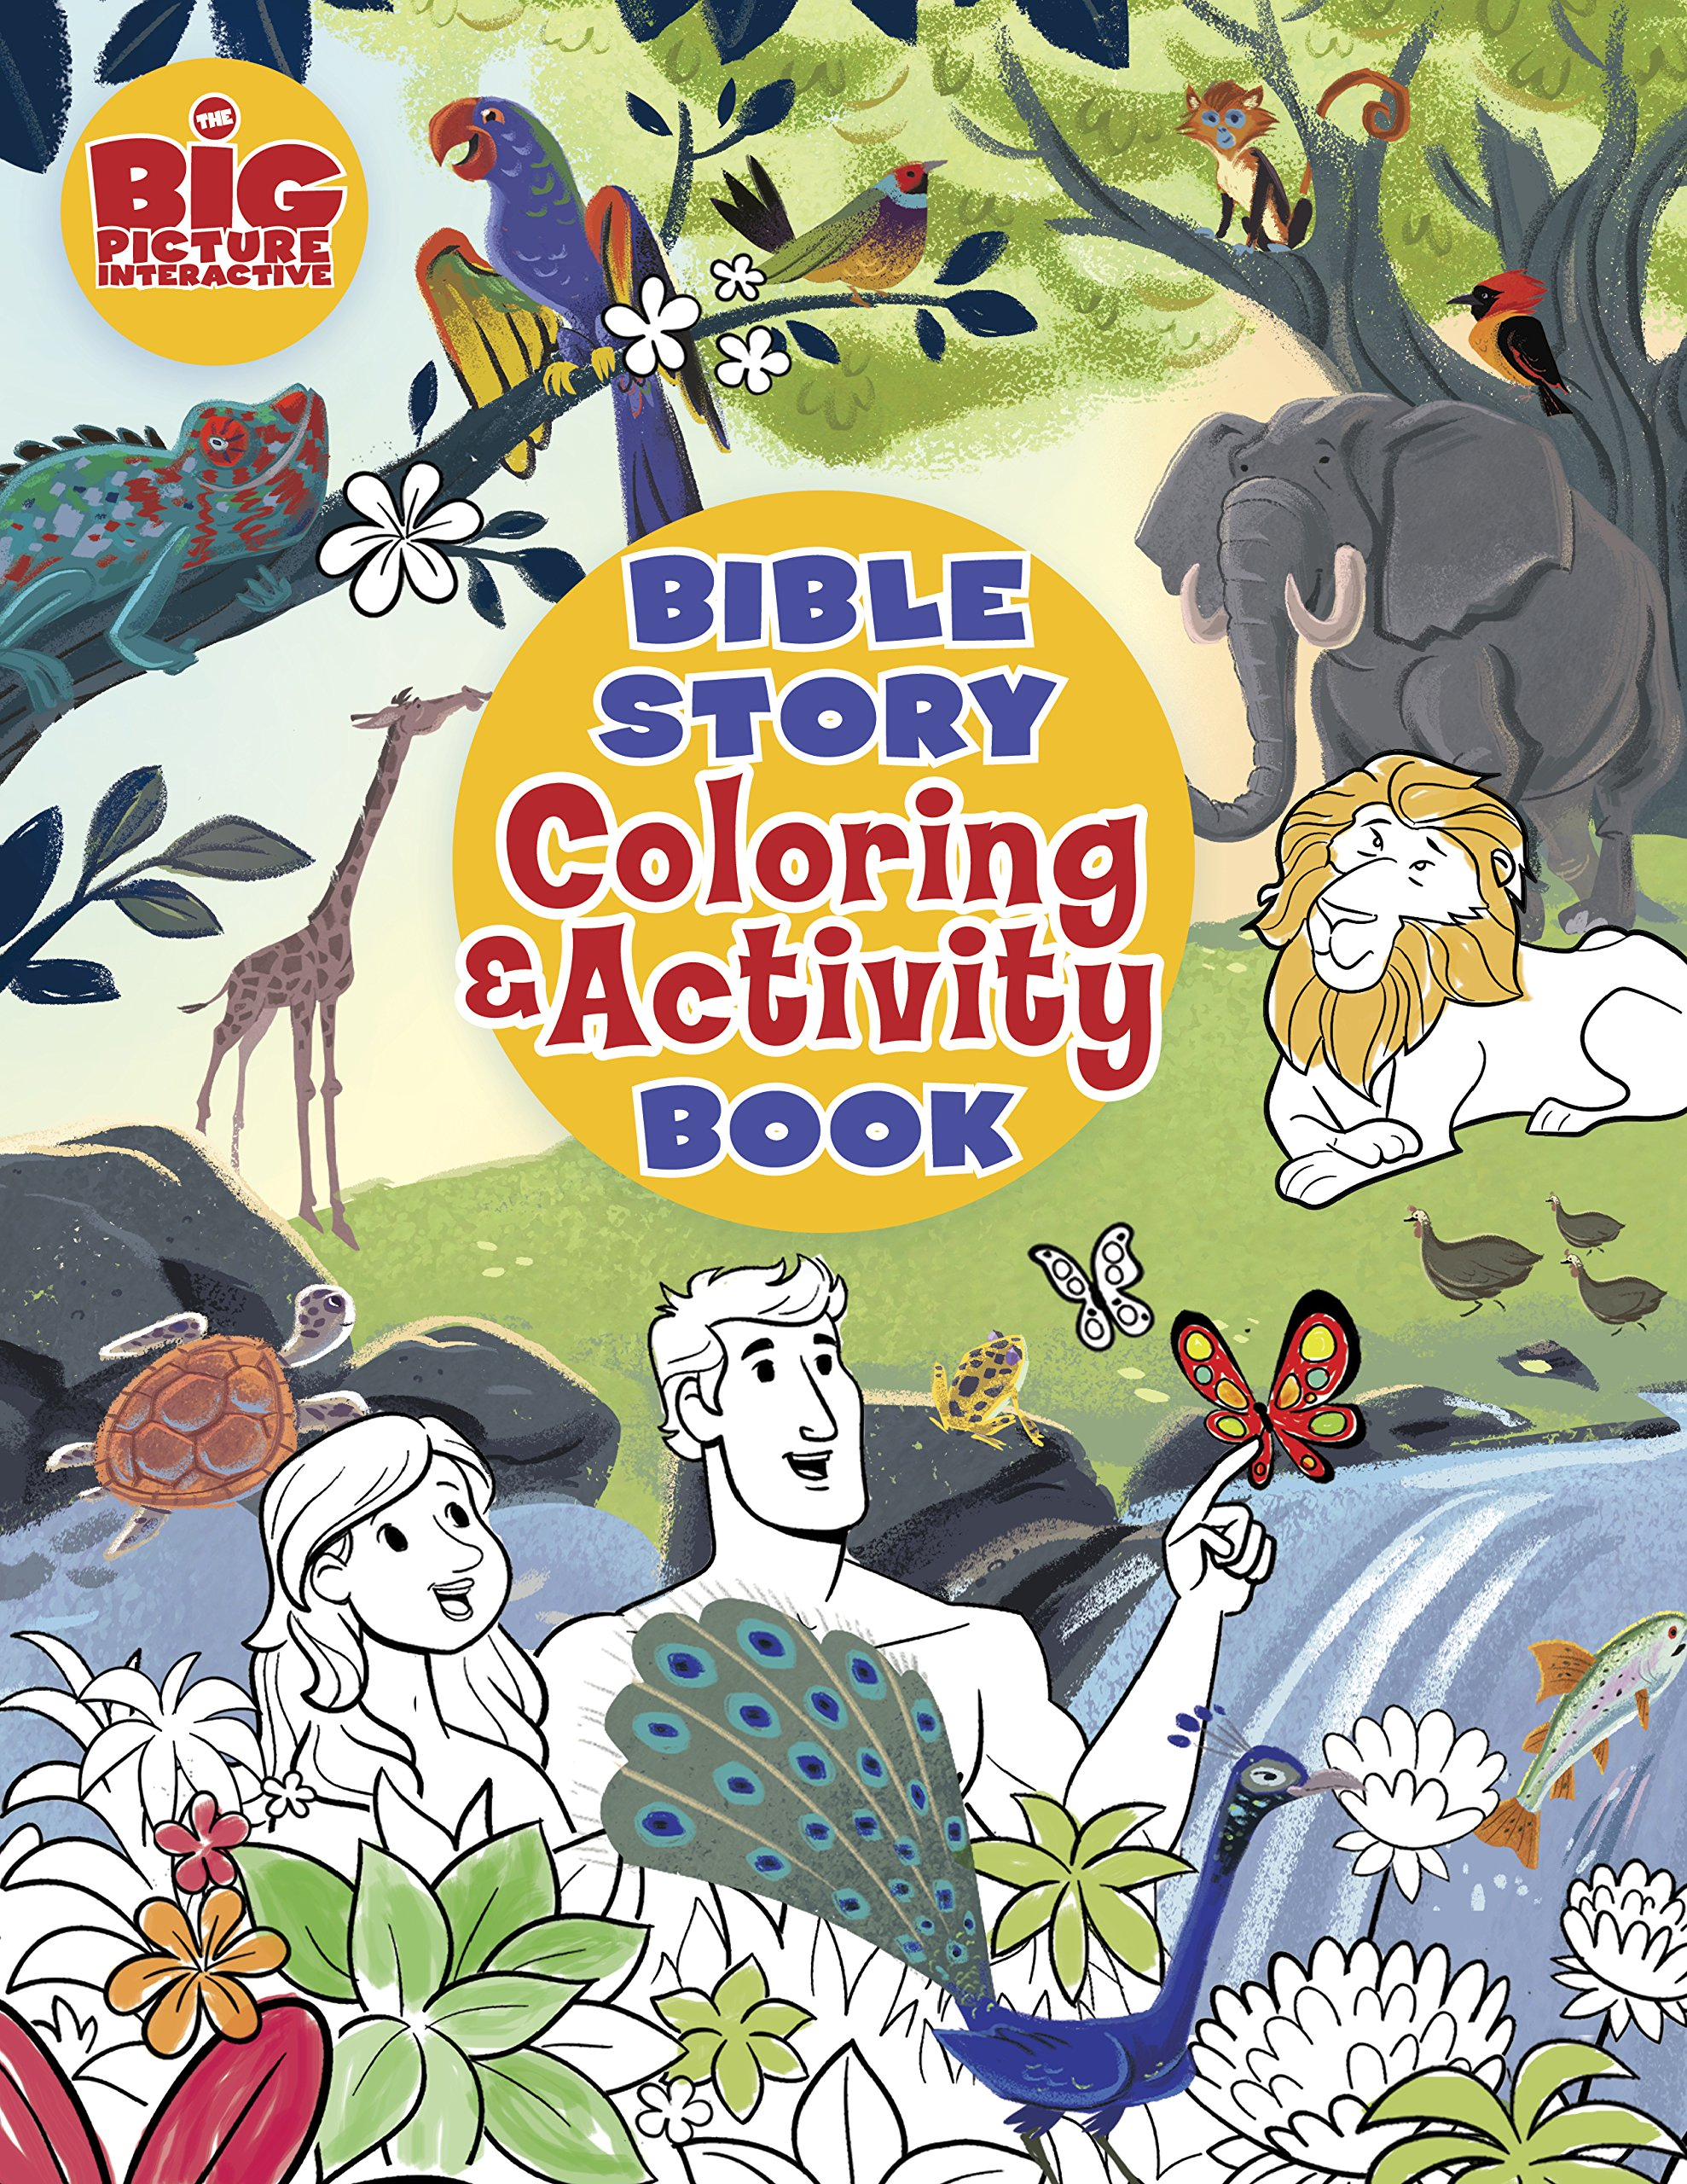 Bible Story Coloring And Activity Book The Big Picture Interactive Gospel Project BH Kids Editorial Staff 9781462745166 Amazon Books